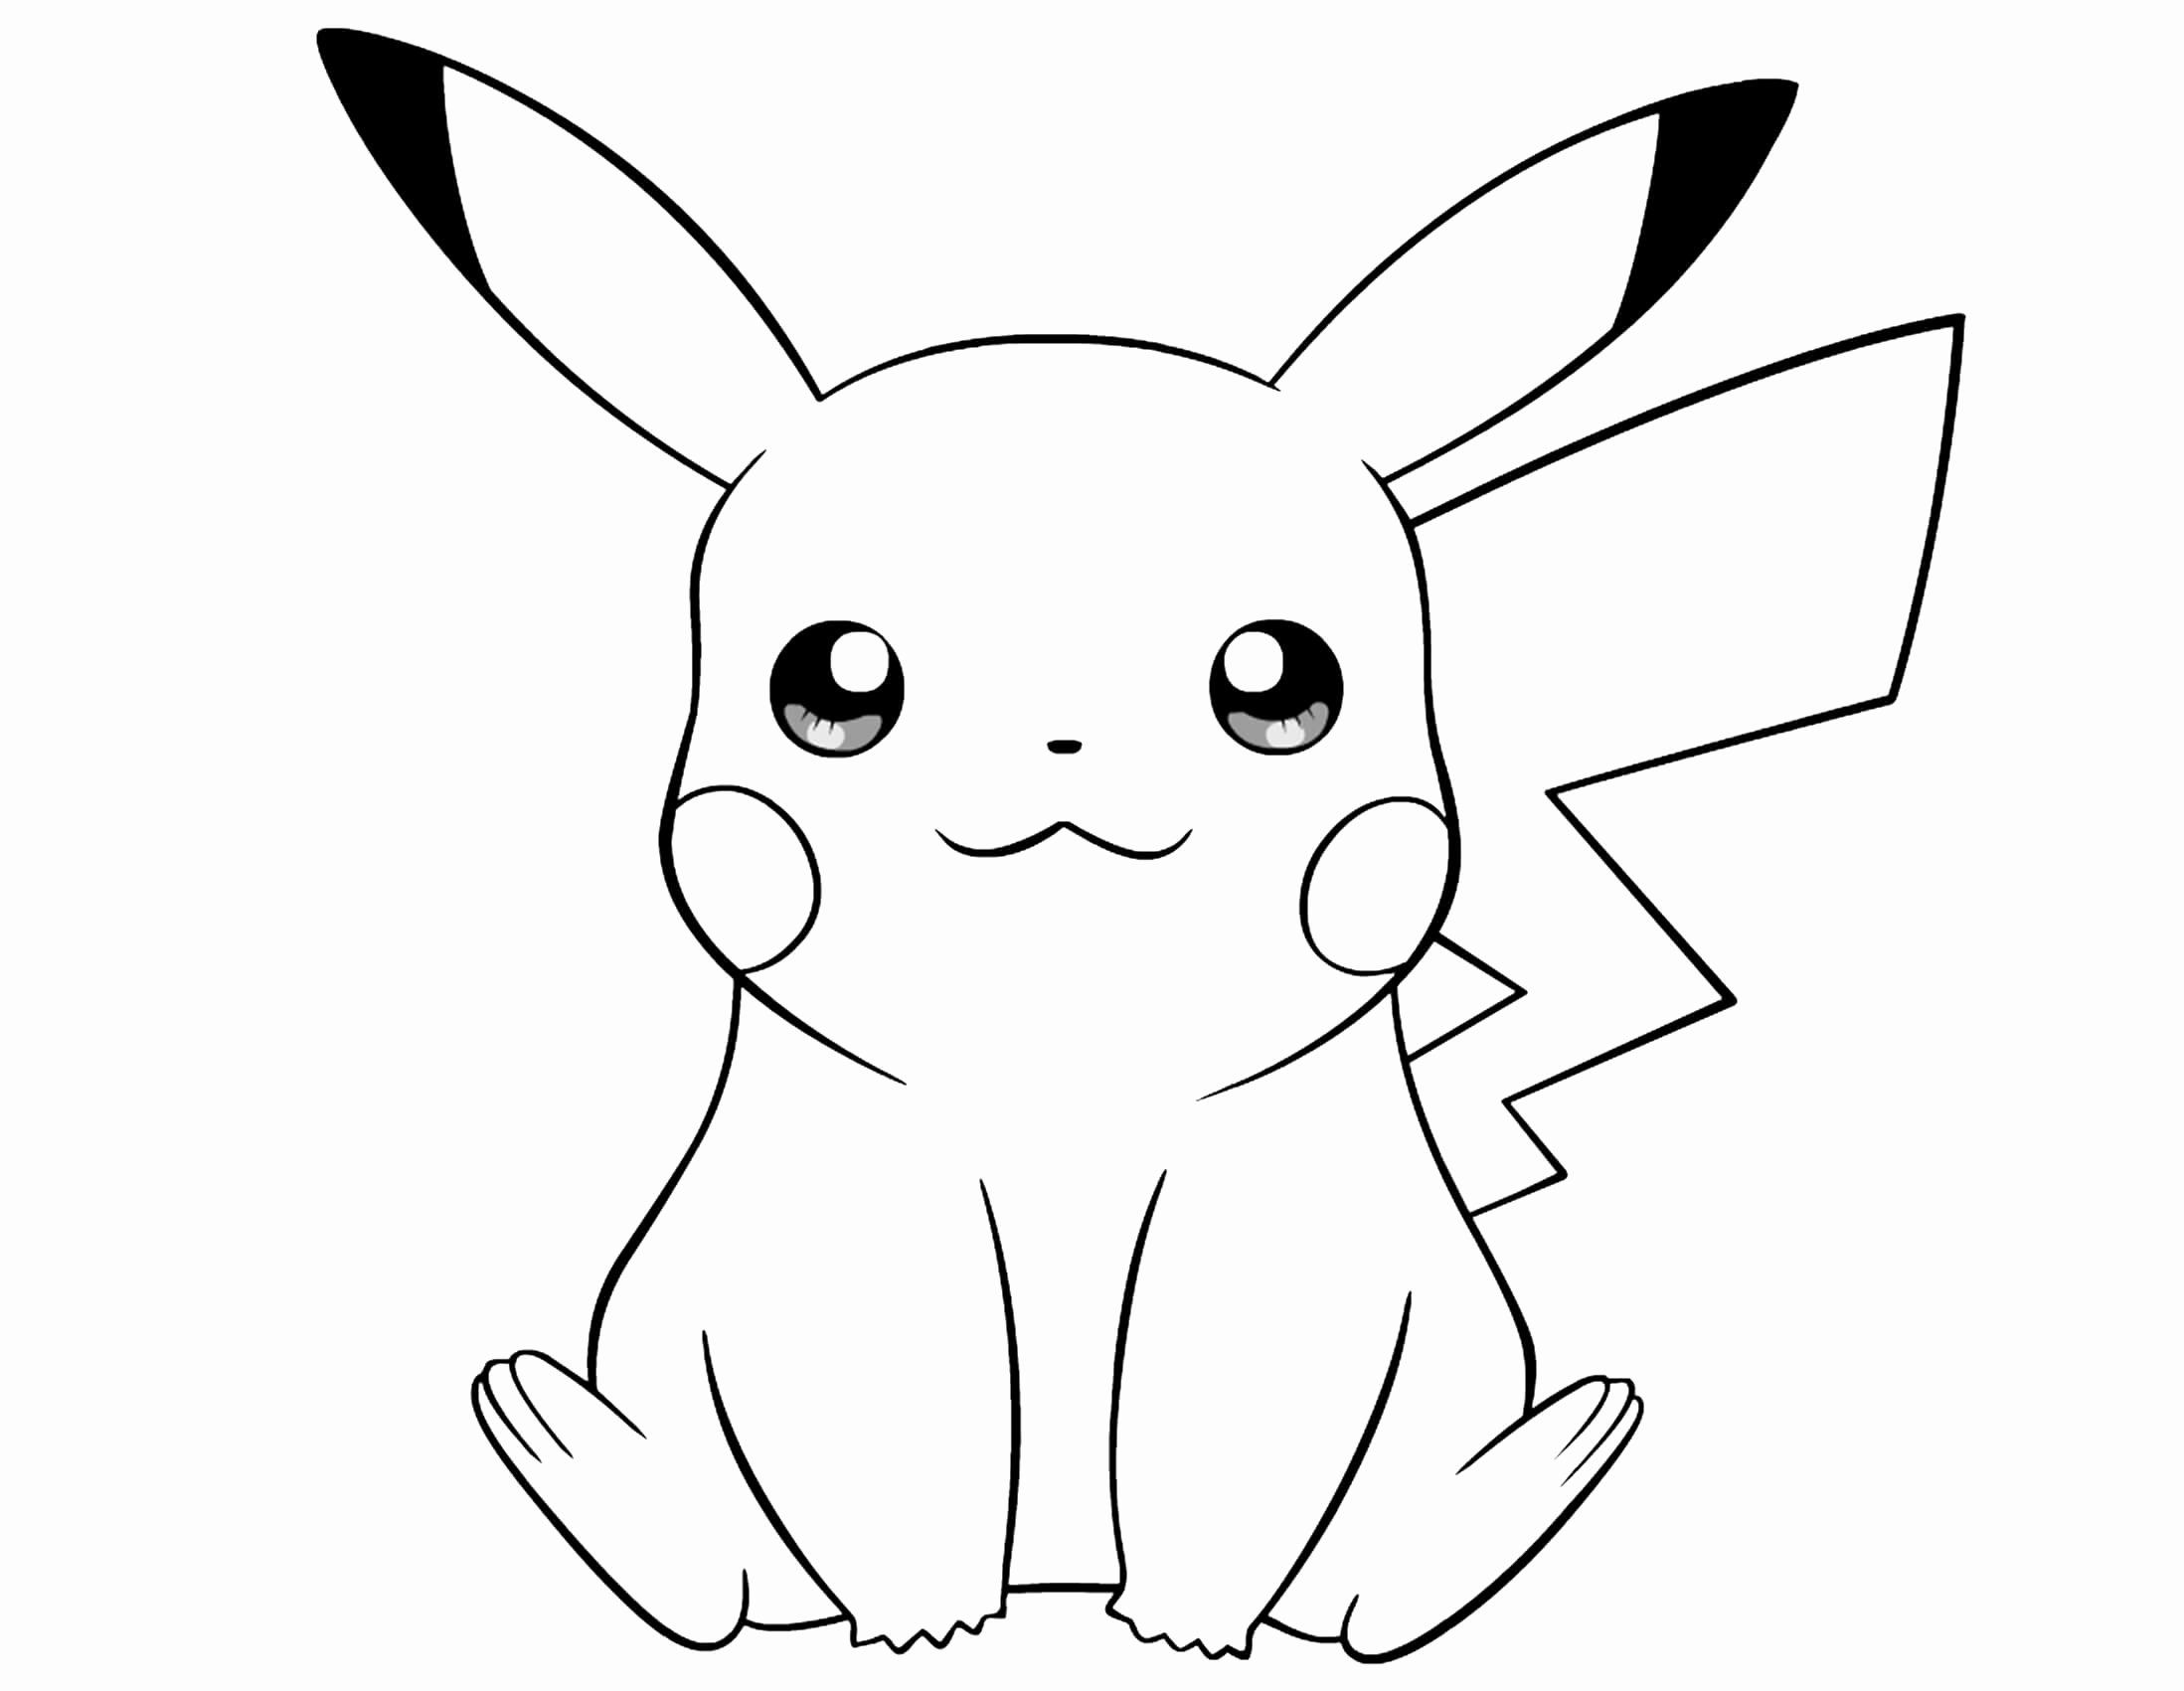 Detective Pikachu Coloring Page New Pokemon Thunderbolt 10 Pikachu